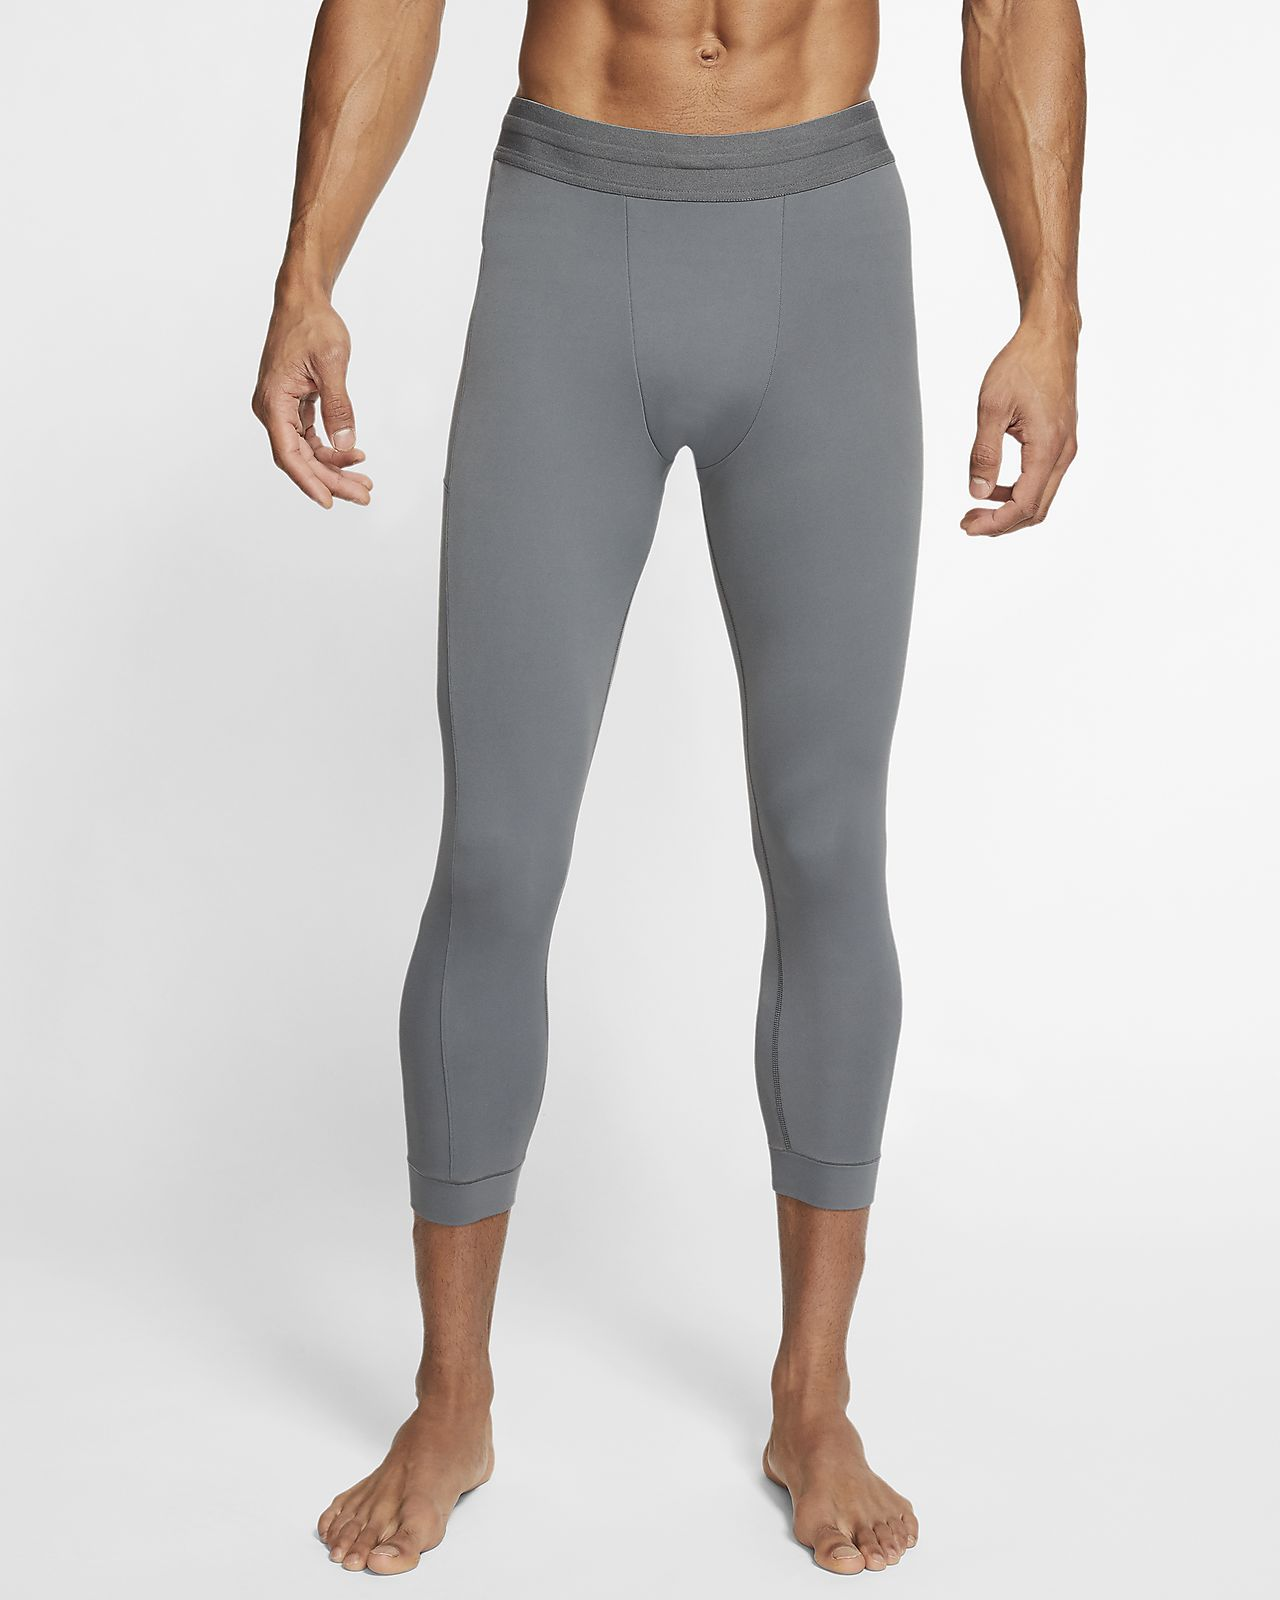 Nike Yoga Men's 3/4 Tights